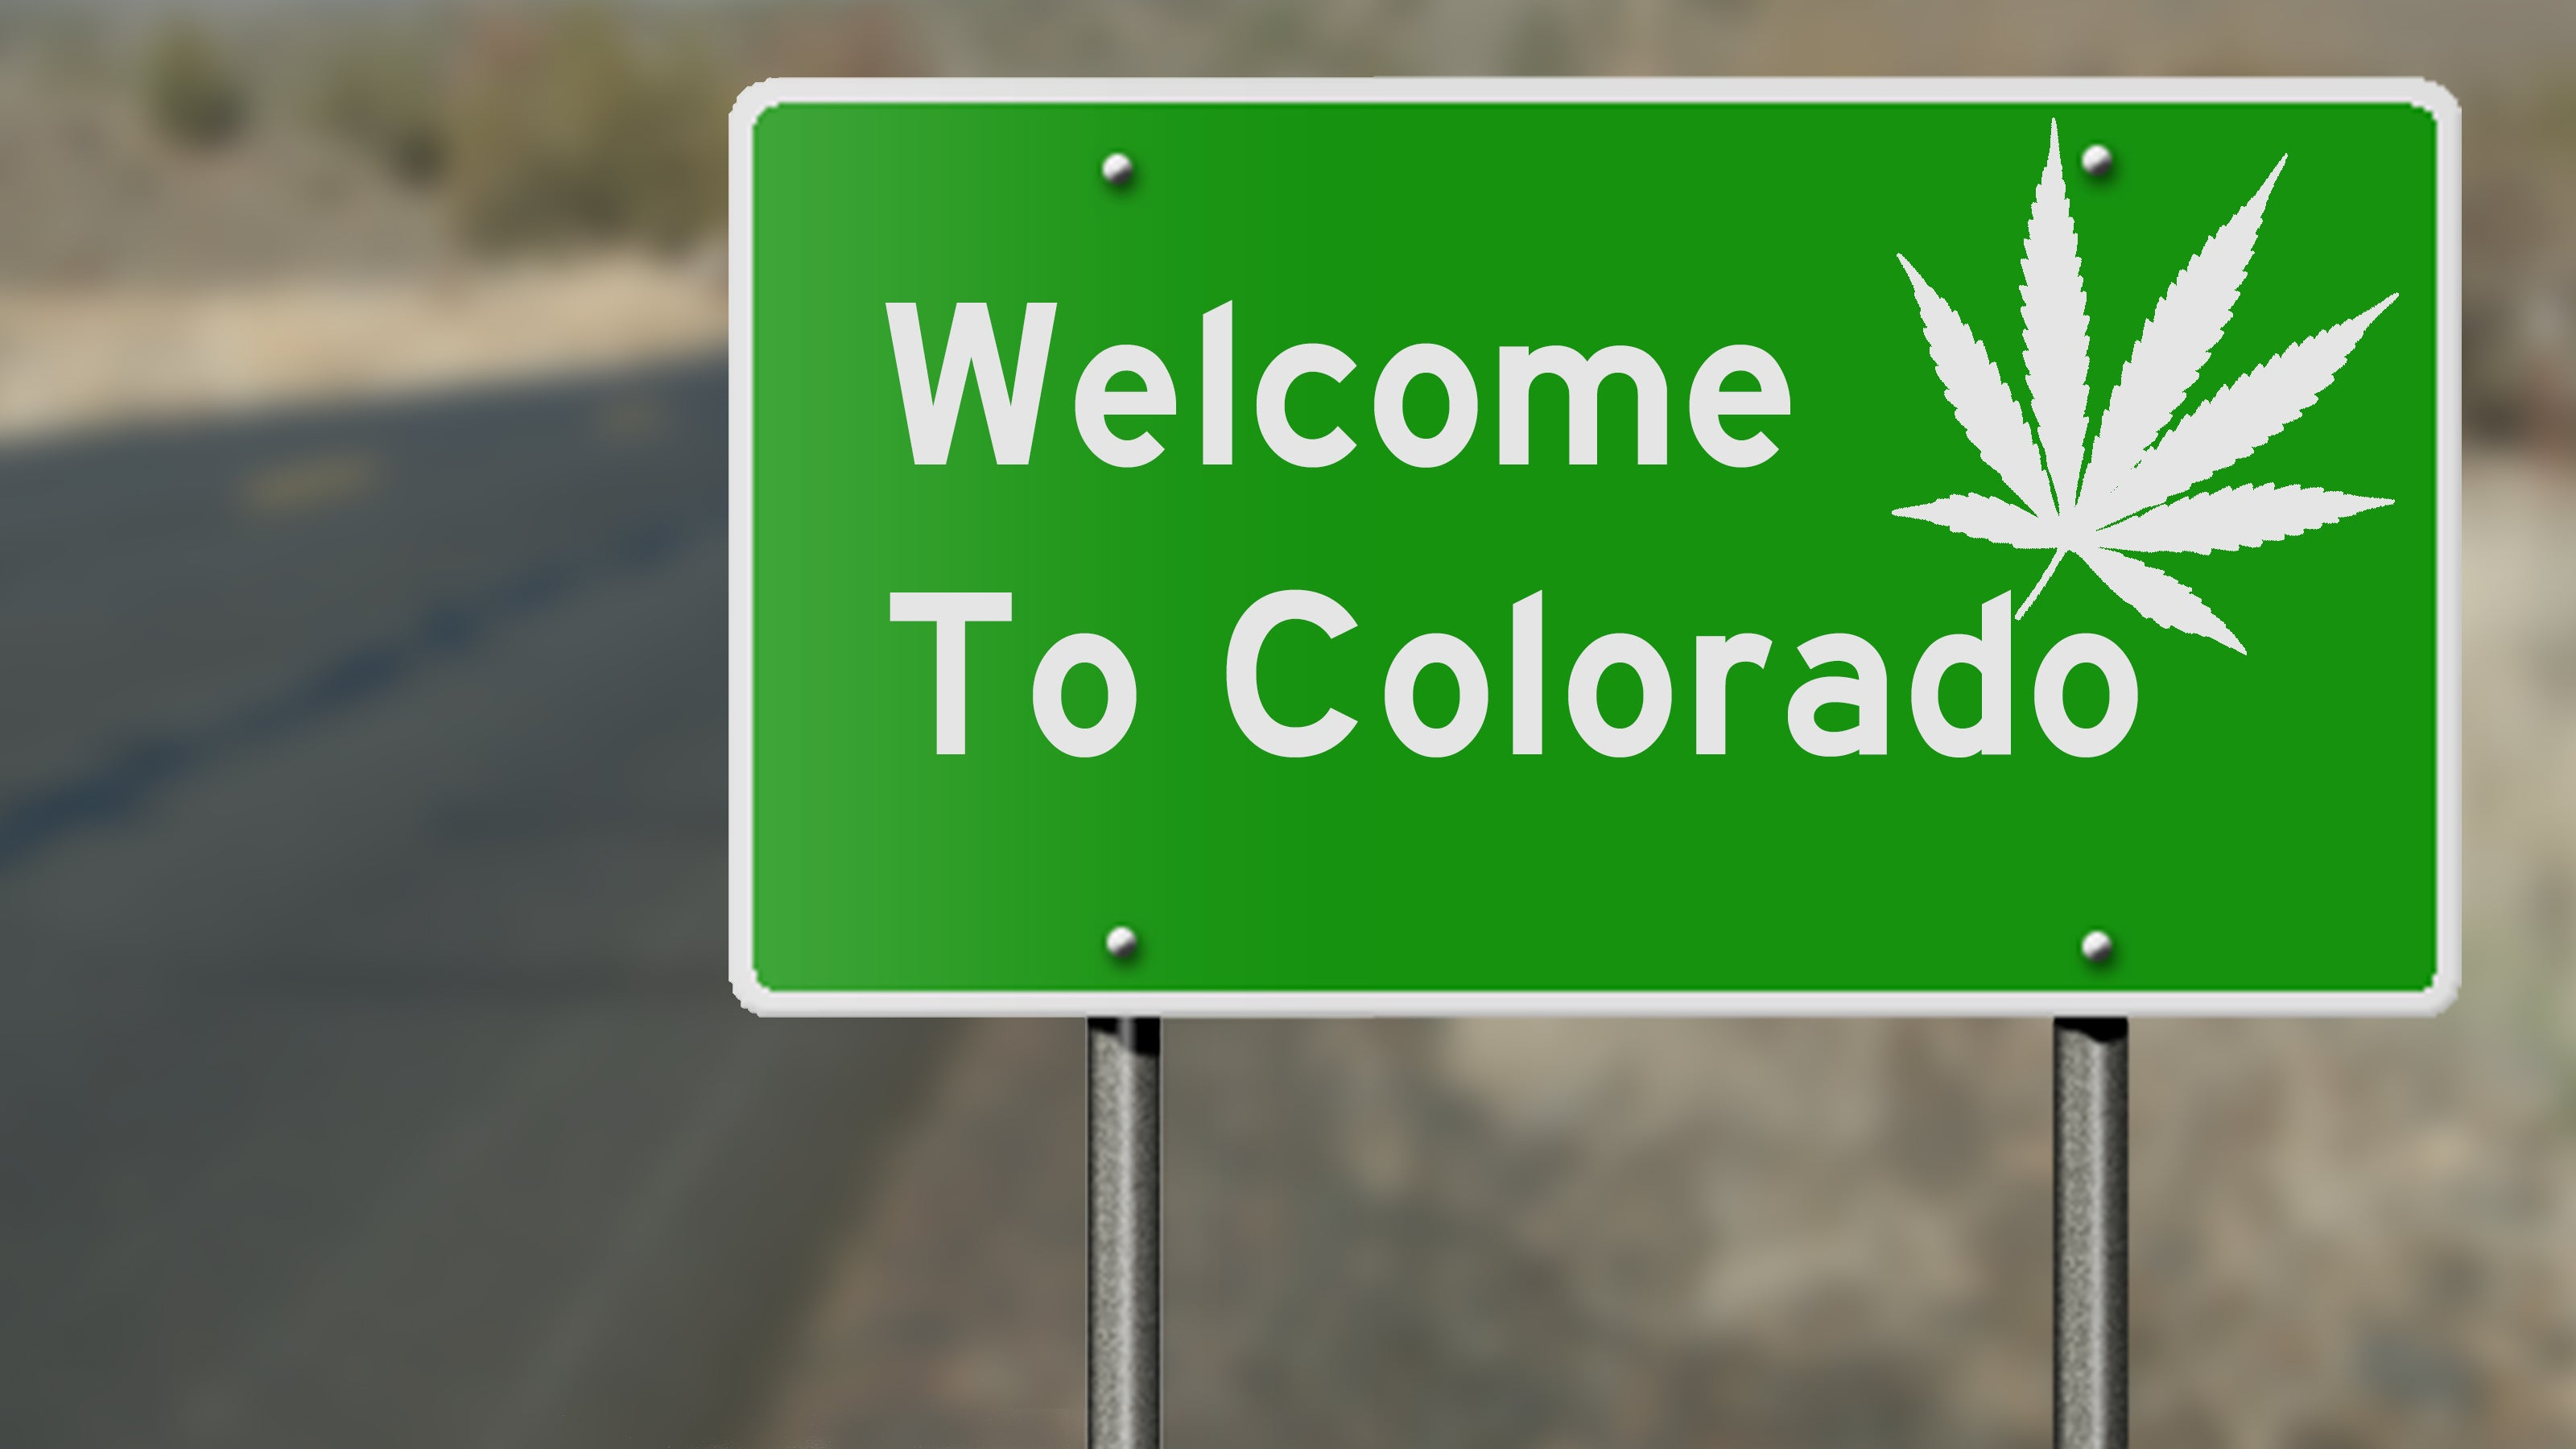 Colorado's Pot Sales Rose 13% in 2019 to New Record   The Motley Fool